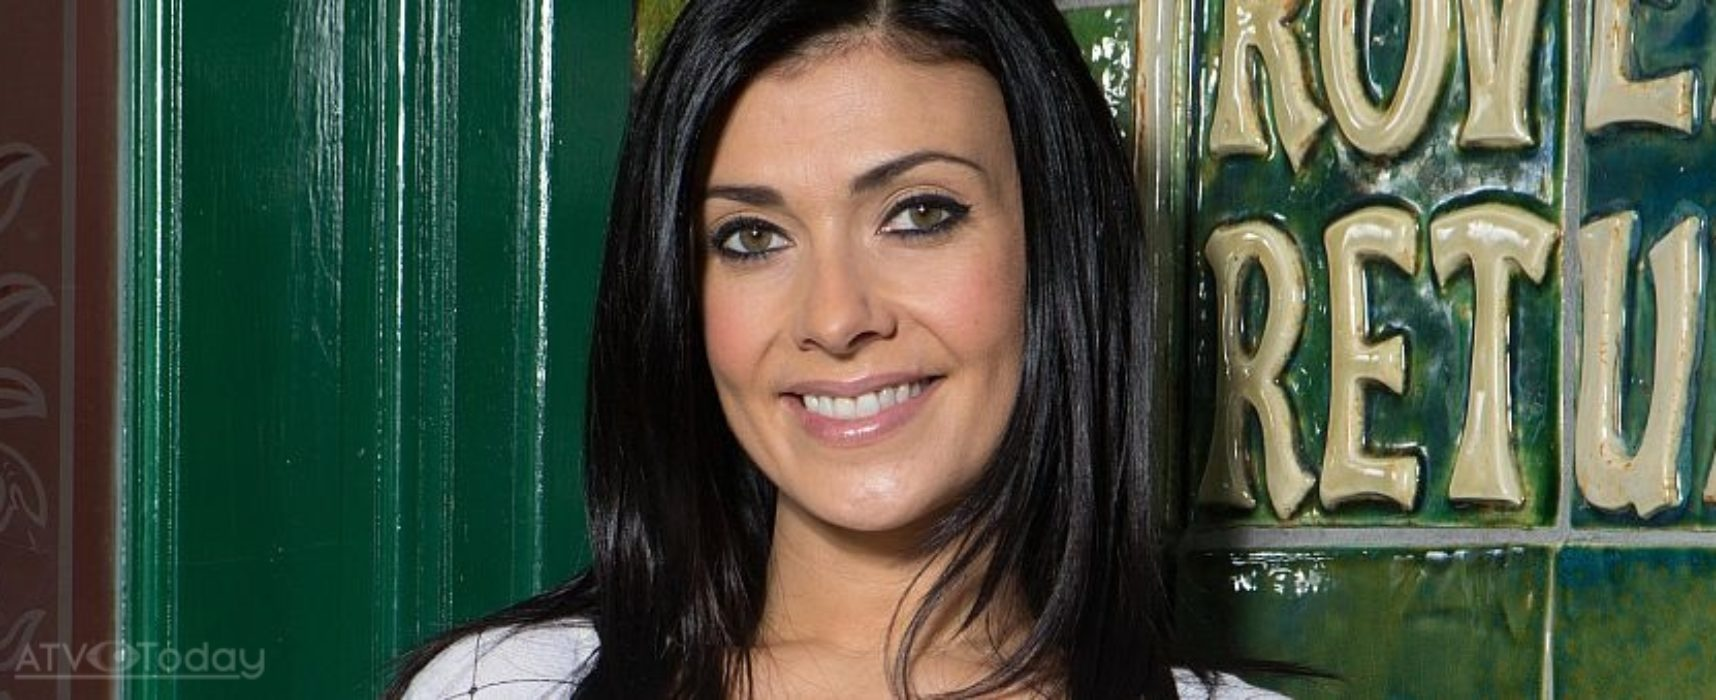 Corrie to reintroduce Michelle Connor's biological son